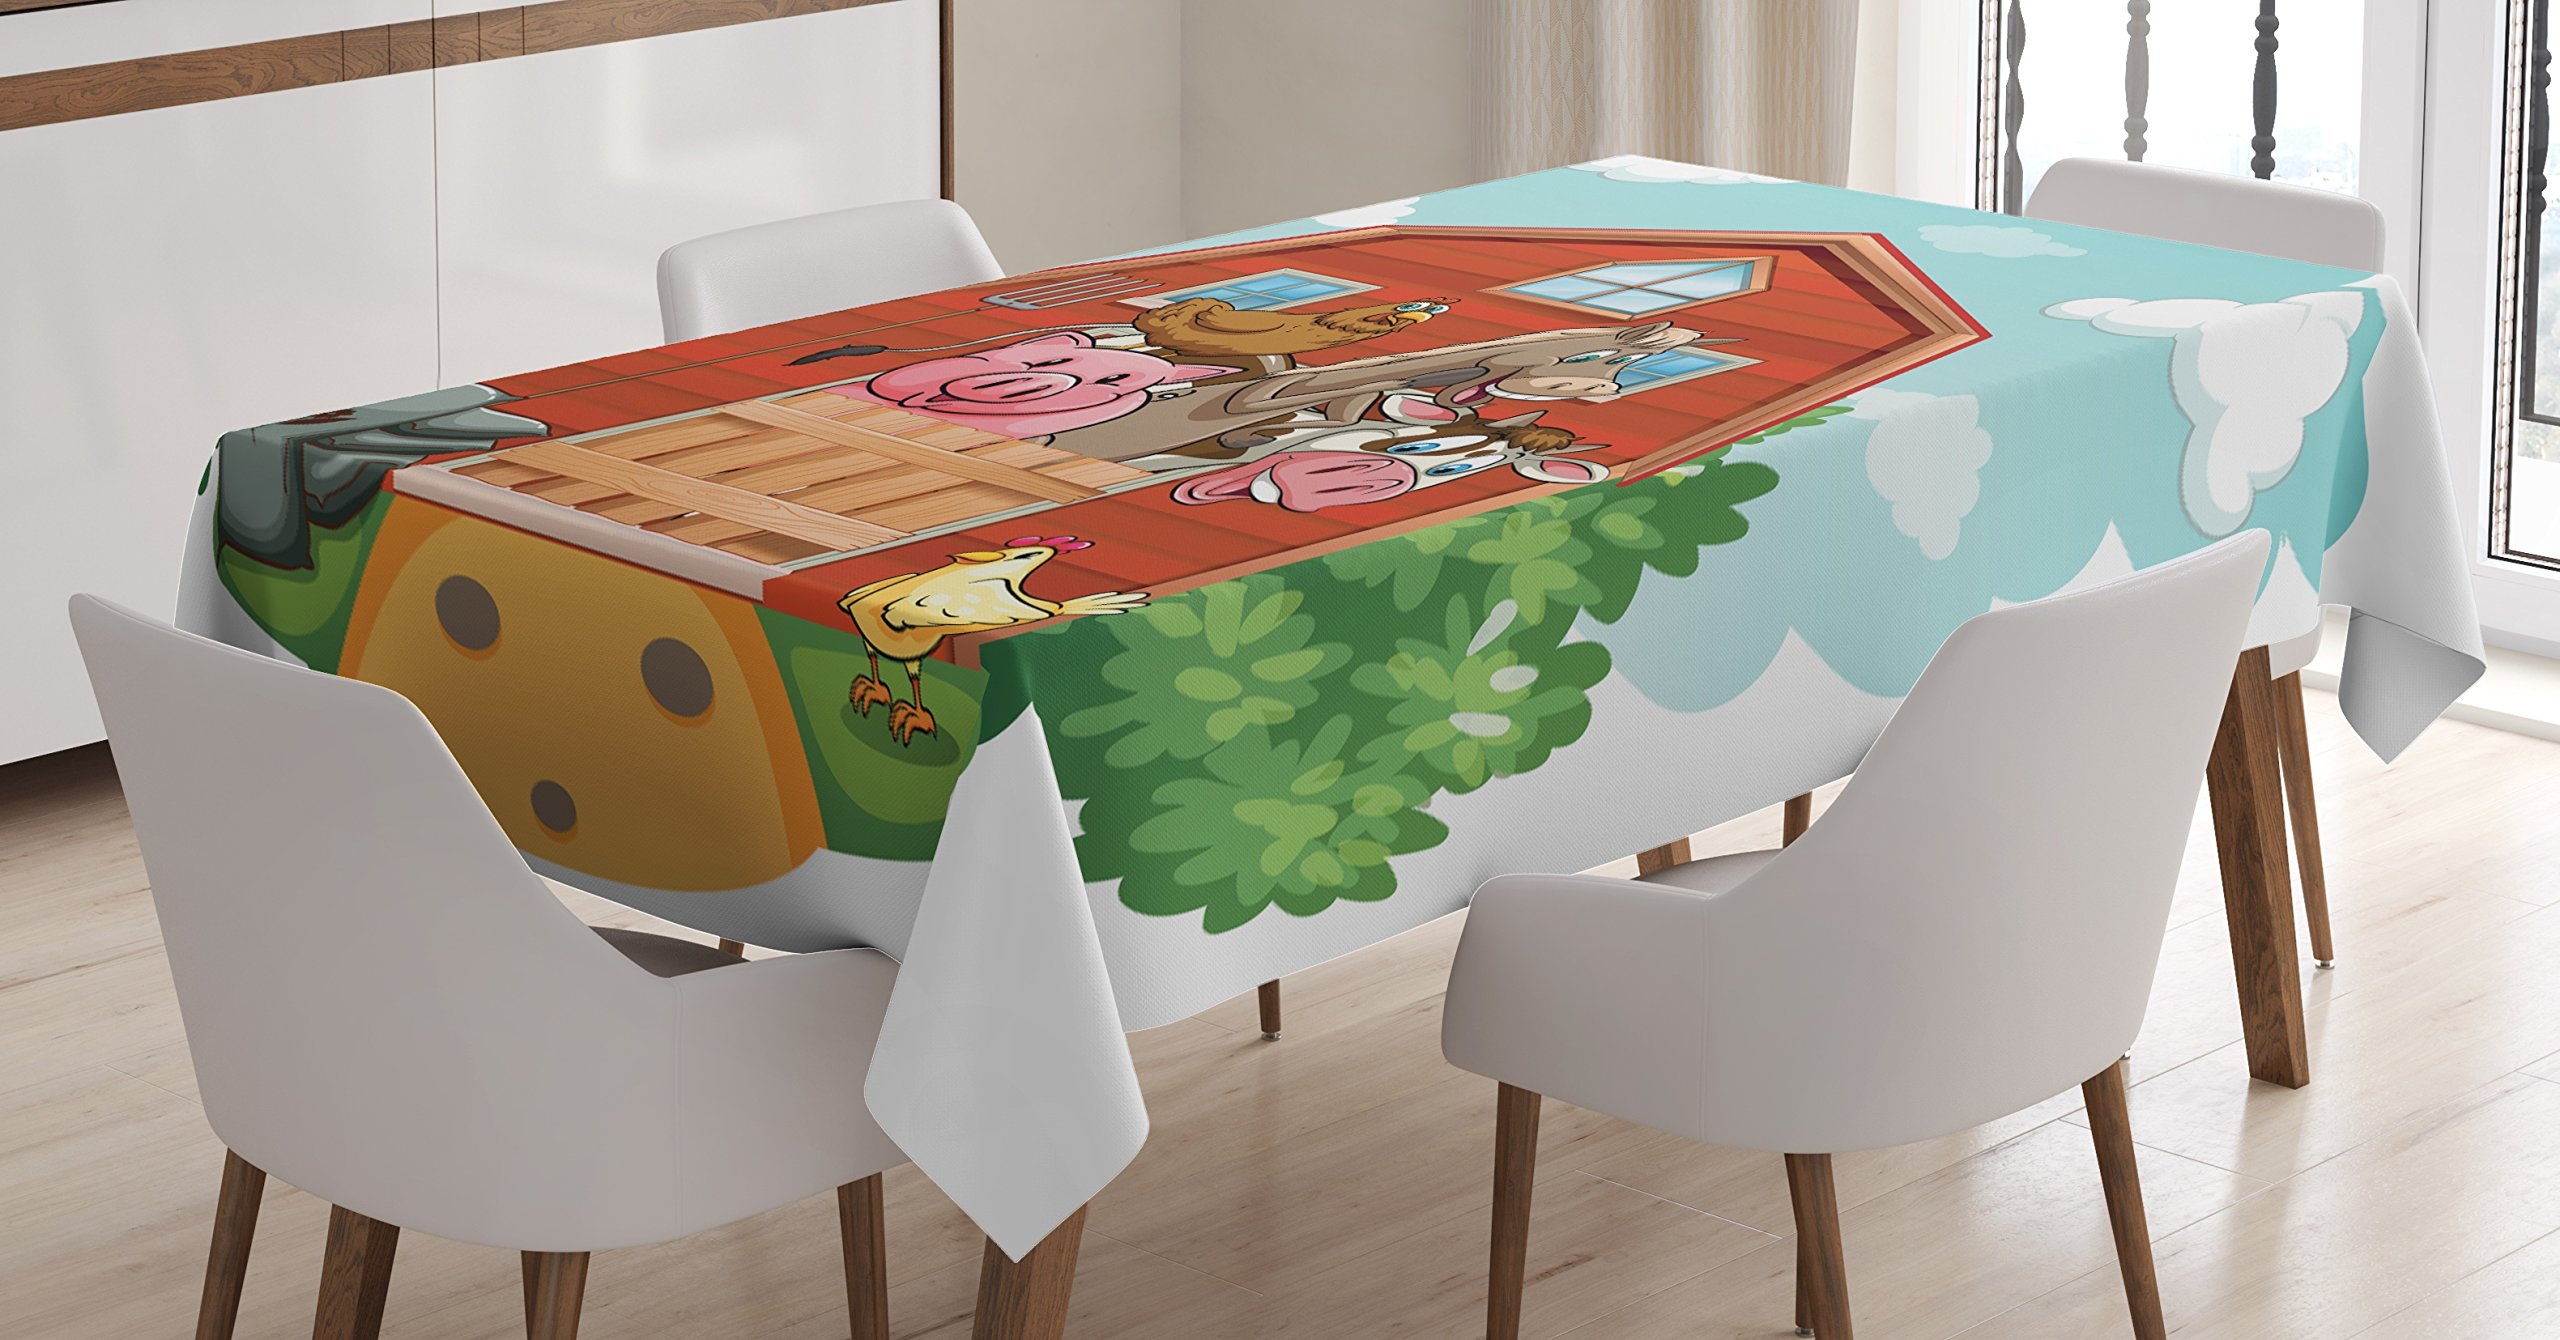 Ambesonne Cartoon Tablecloth, Happy Farm Animals Living in Barnhouse Chicken Domestic Rural Artistic, Dining Room Kitchen Rectangular Table Cover, 60 W X 90 L inches, Seafoam Fern Green Rust